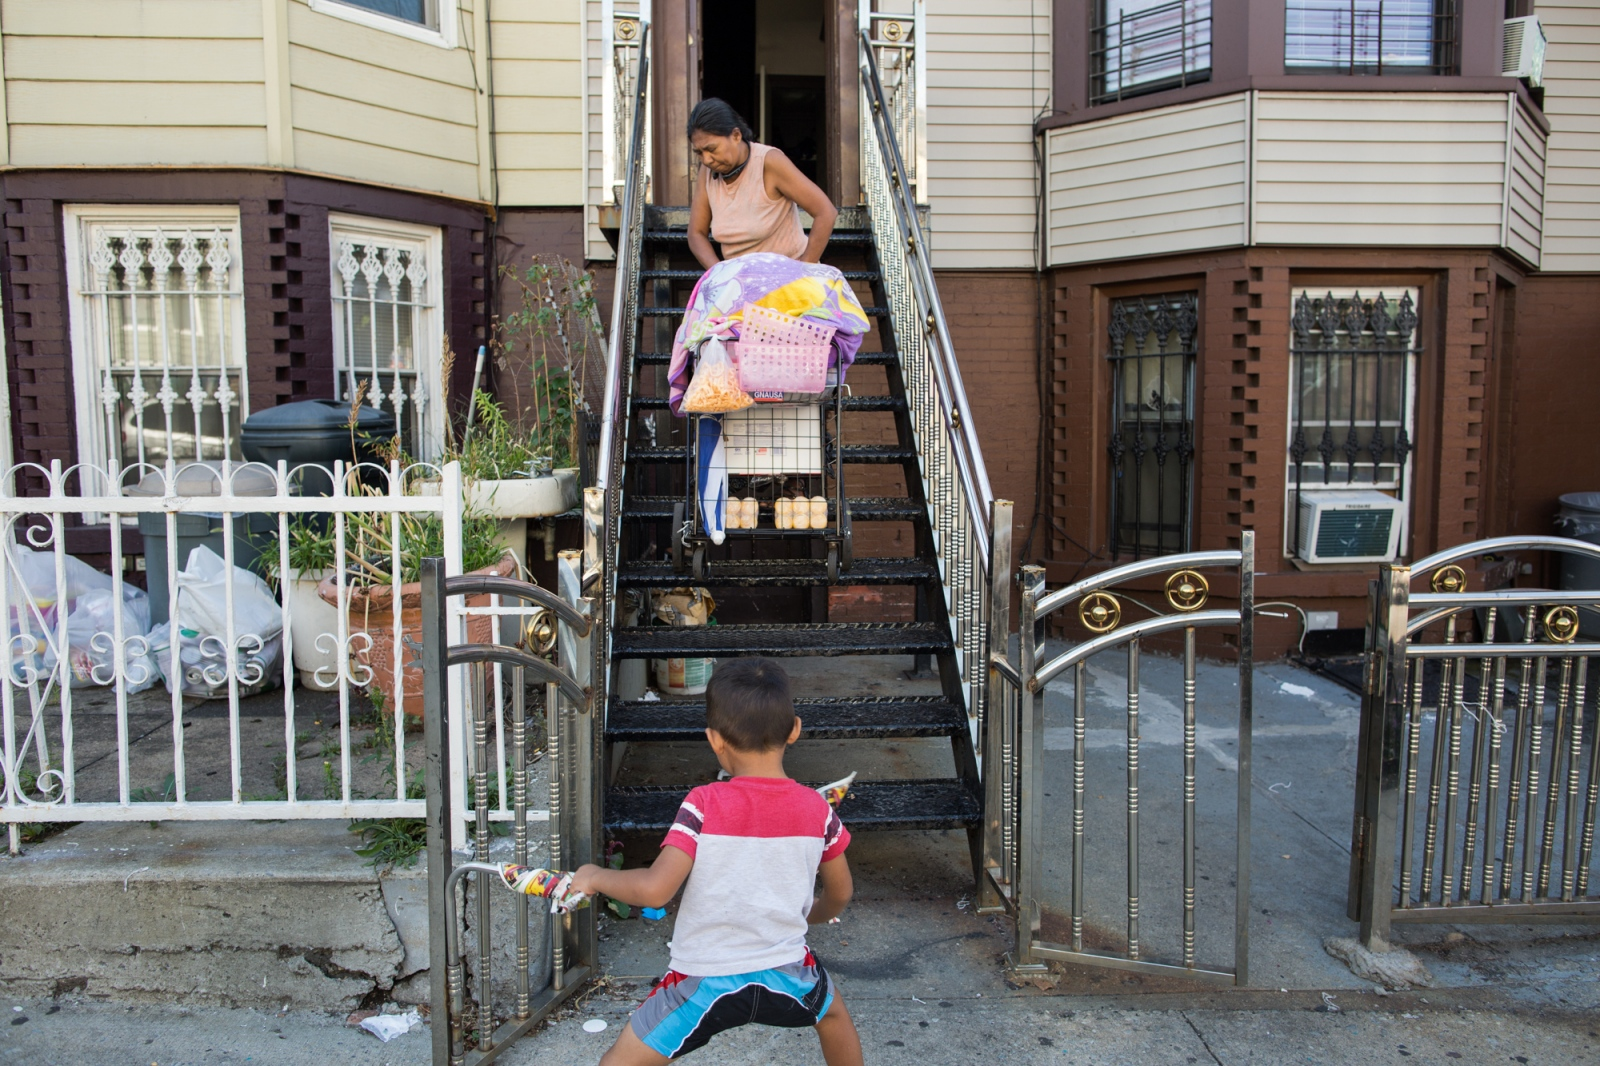 Dionisia Guadalupe leaving her apartment on 45th St. with her candy cart to sell across PS 503 in Sunset Park, Brooklyn, New York. 2016